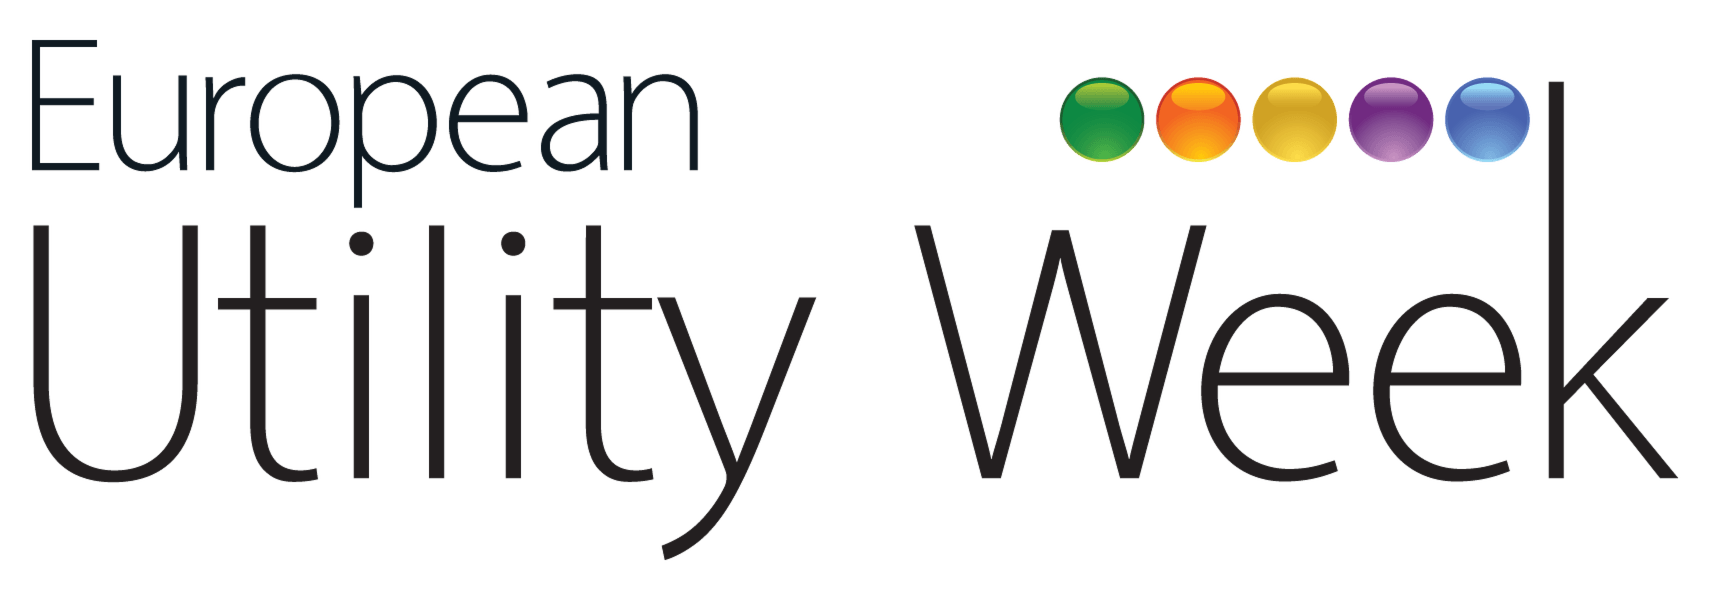 European Utility Week is now Enlit Europe